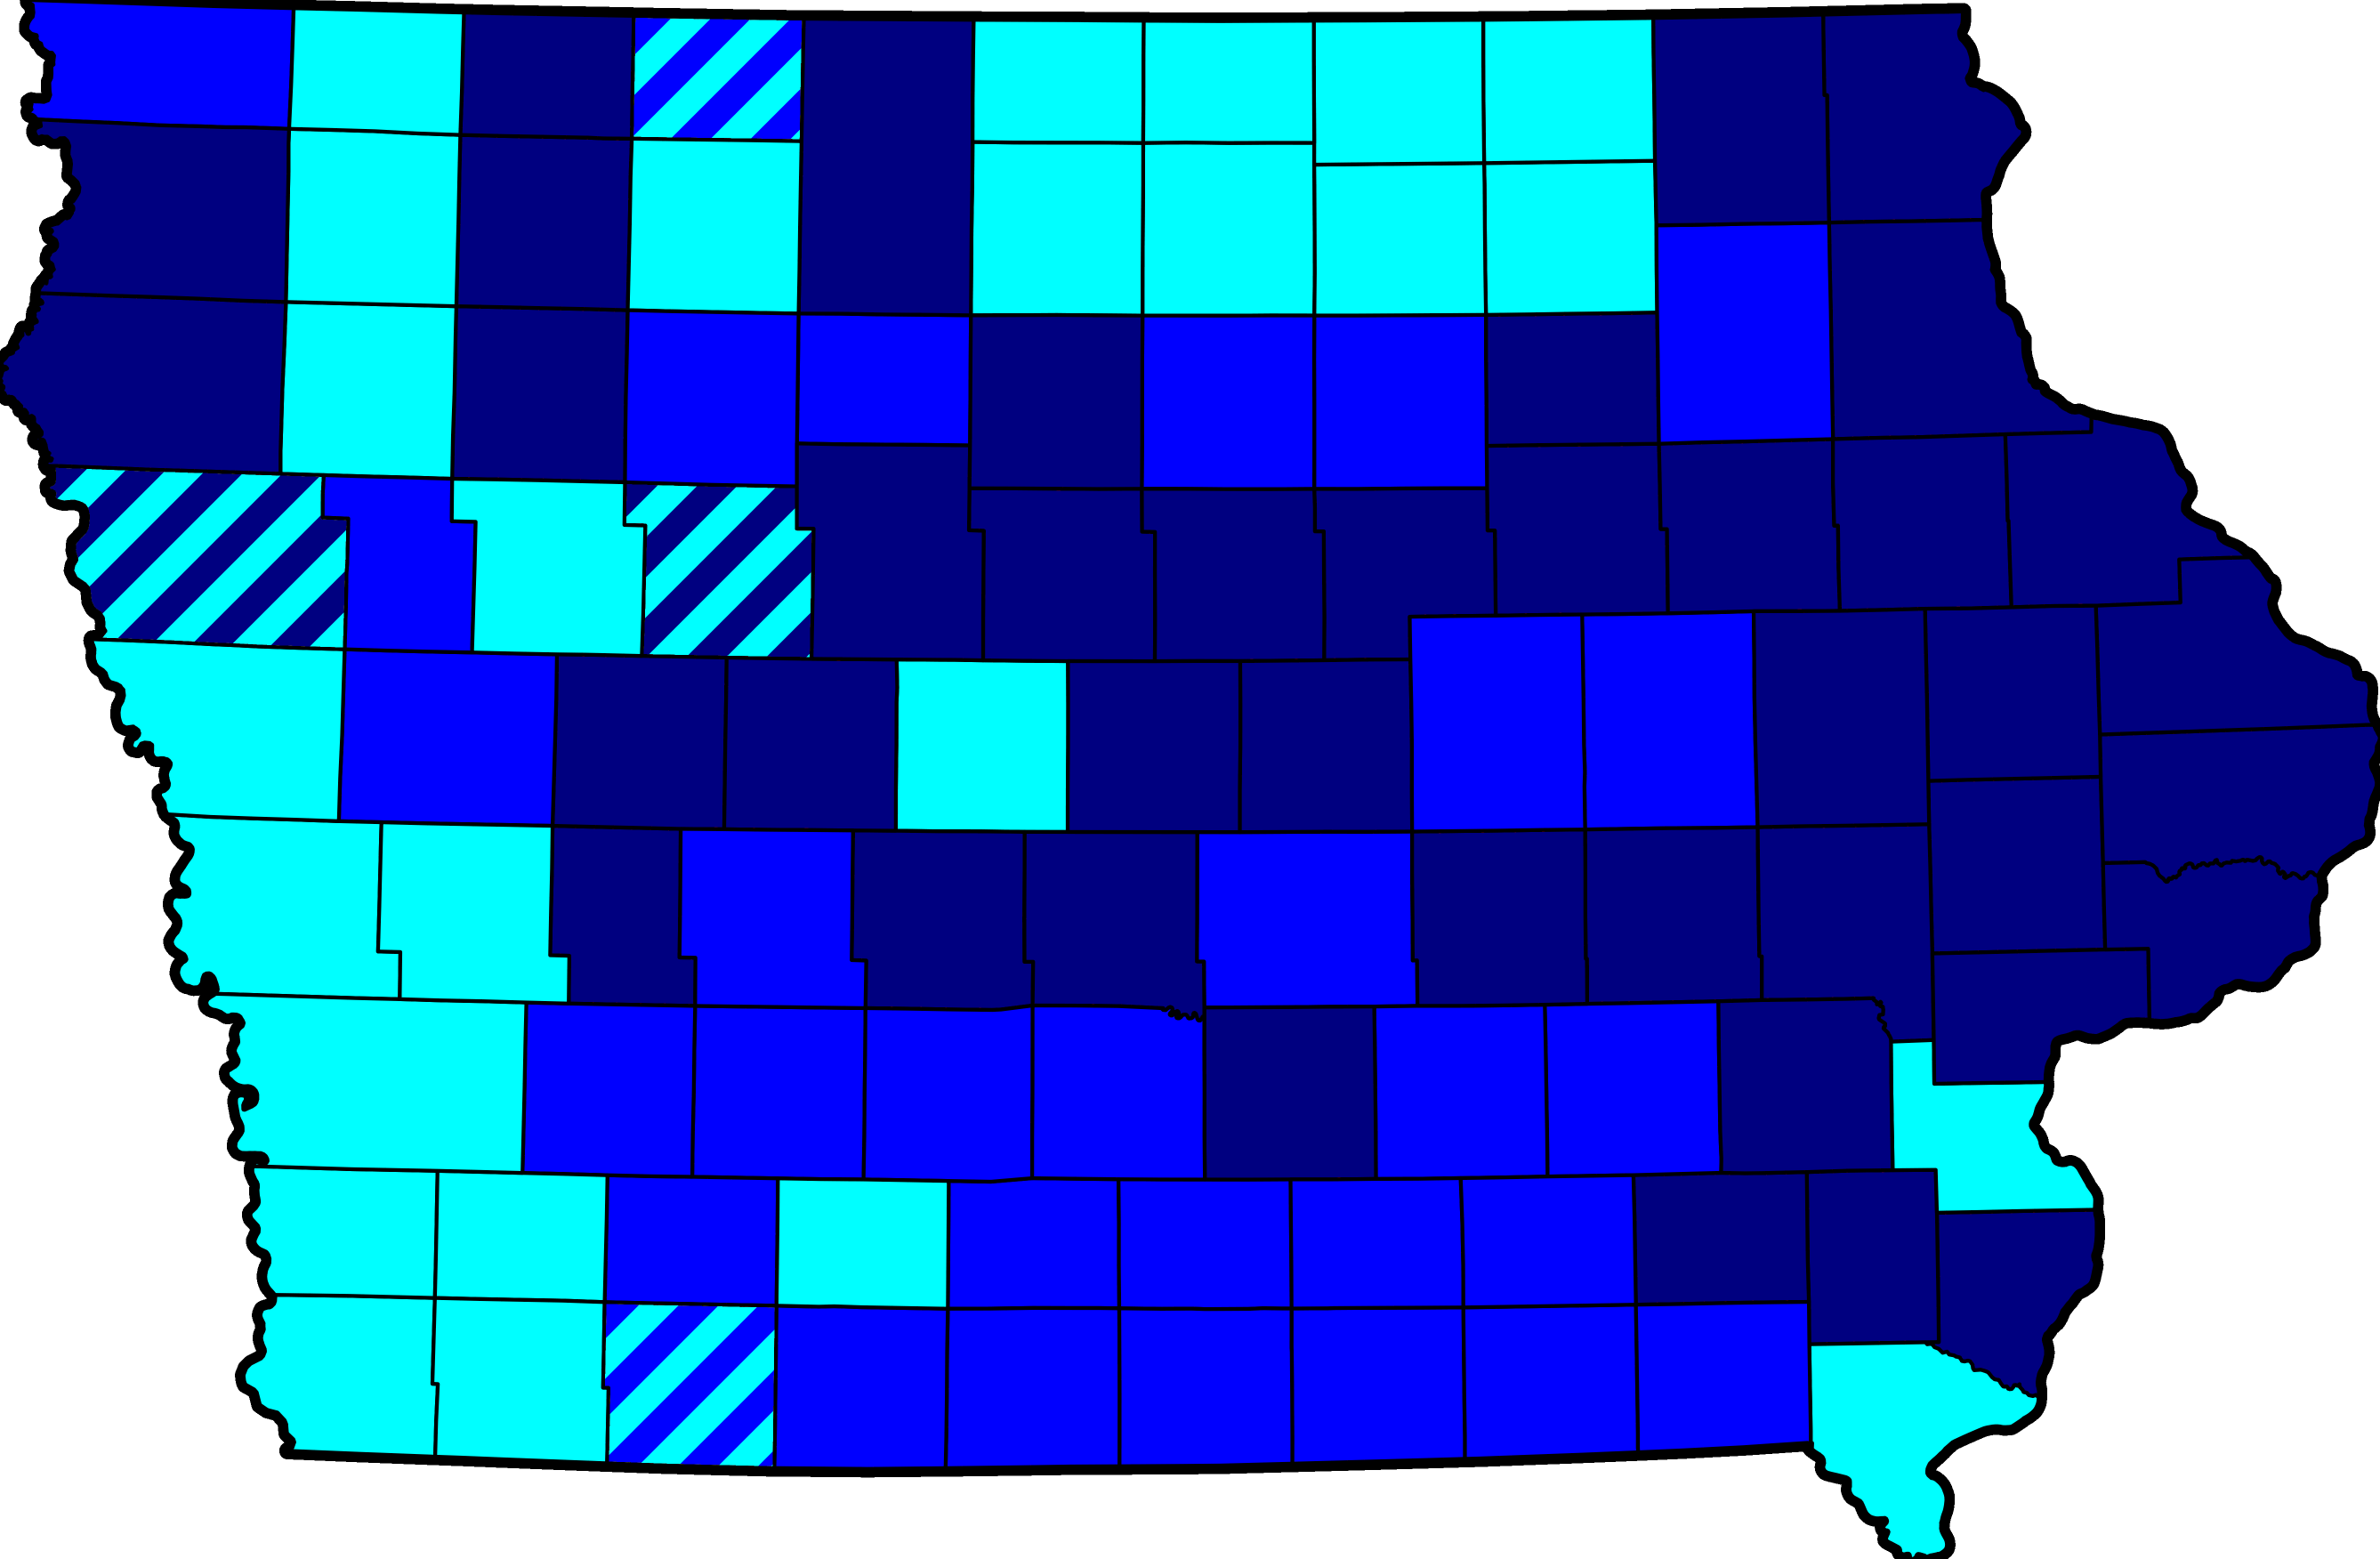 Democracy clipart primary caucus. File map of results